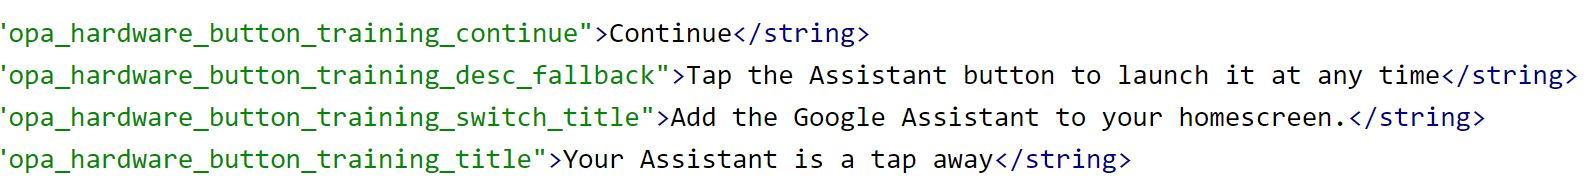 google assistant button string